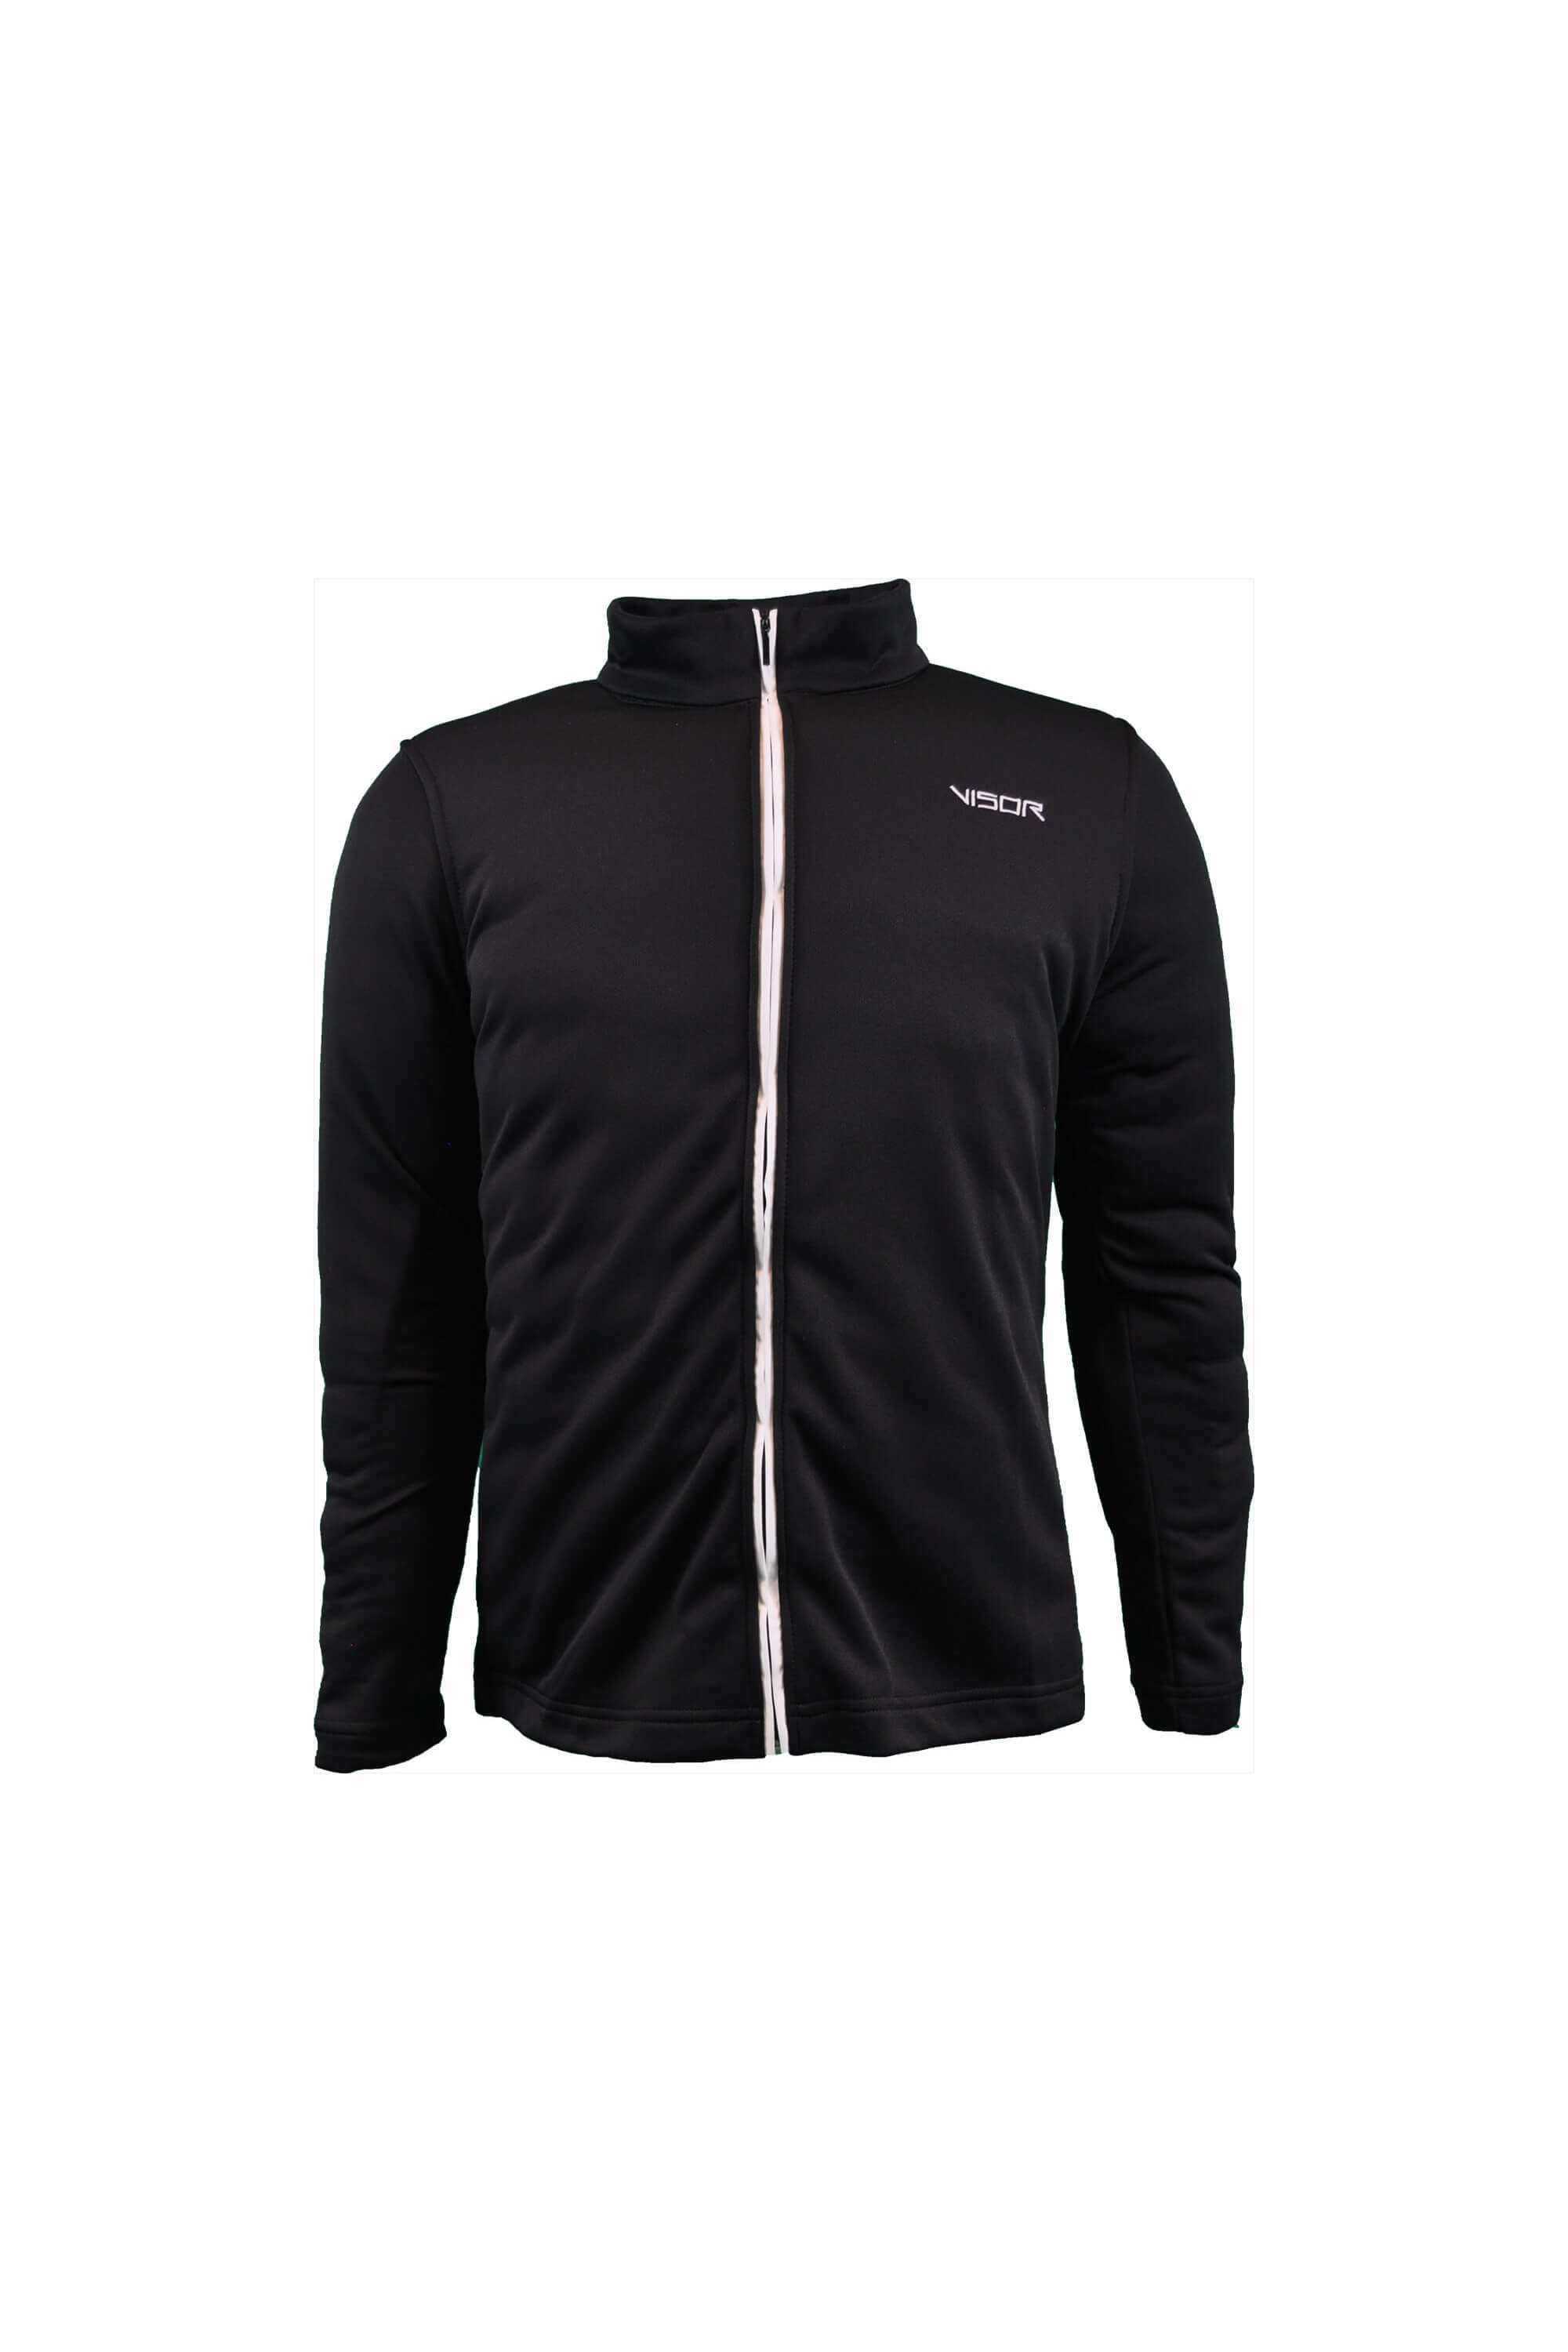 PACER Midlayer Men